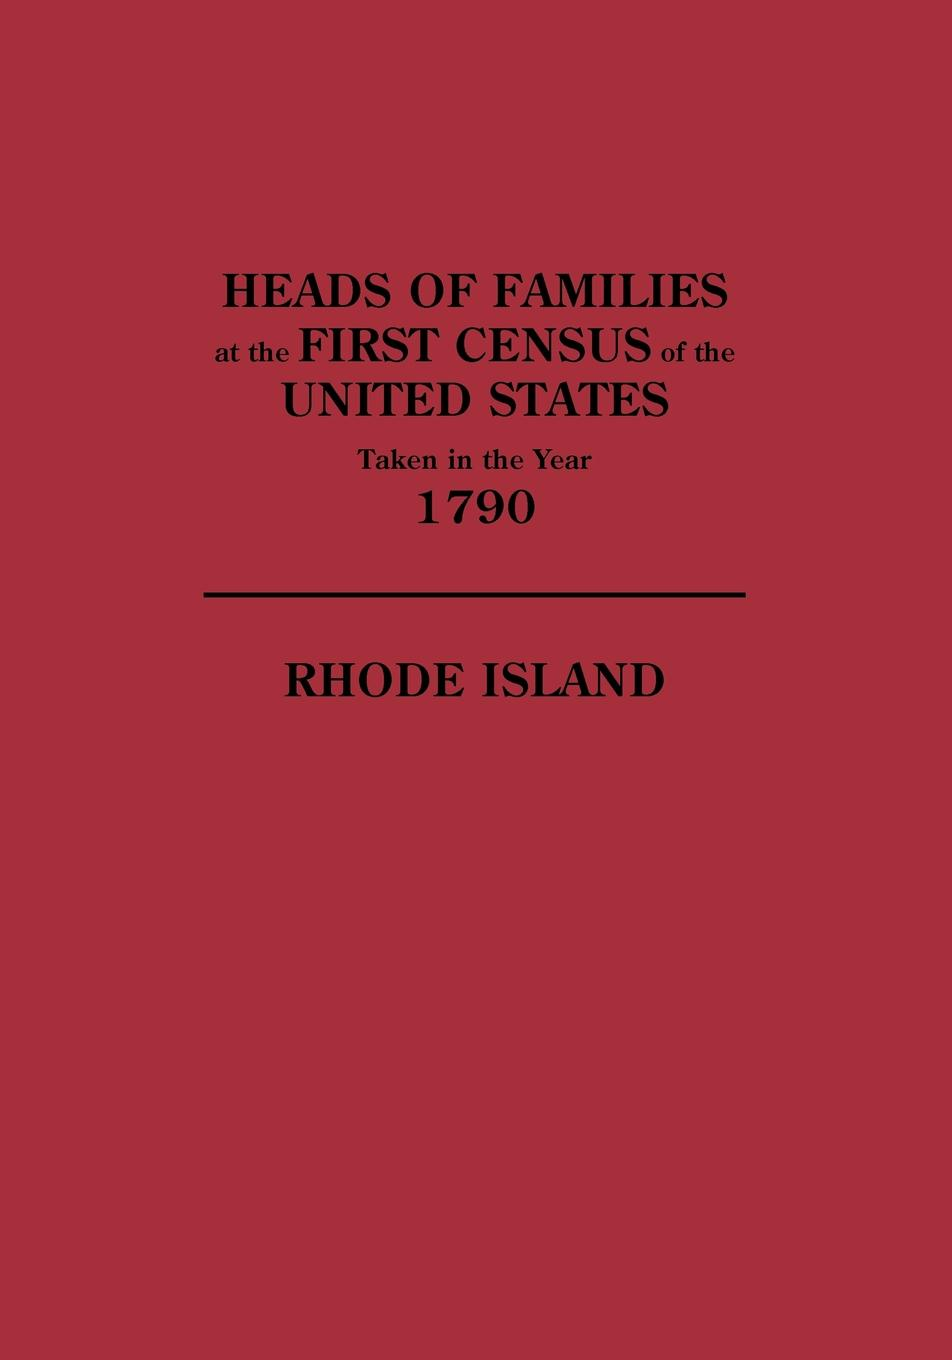 Фото - U S Bureau of the Census, Bureau Of the Census United States, U. S. Bureau of the Census Heads of Families at the First Census of the U. S. Taken in the Year 1790. Rhode Island leslie bond bermuda voyagers ii in search of the u s s cyclops